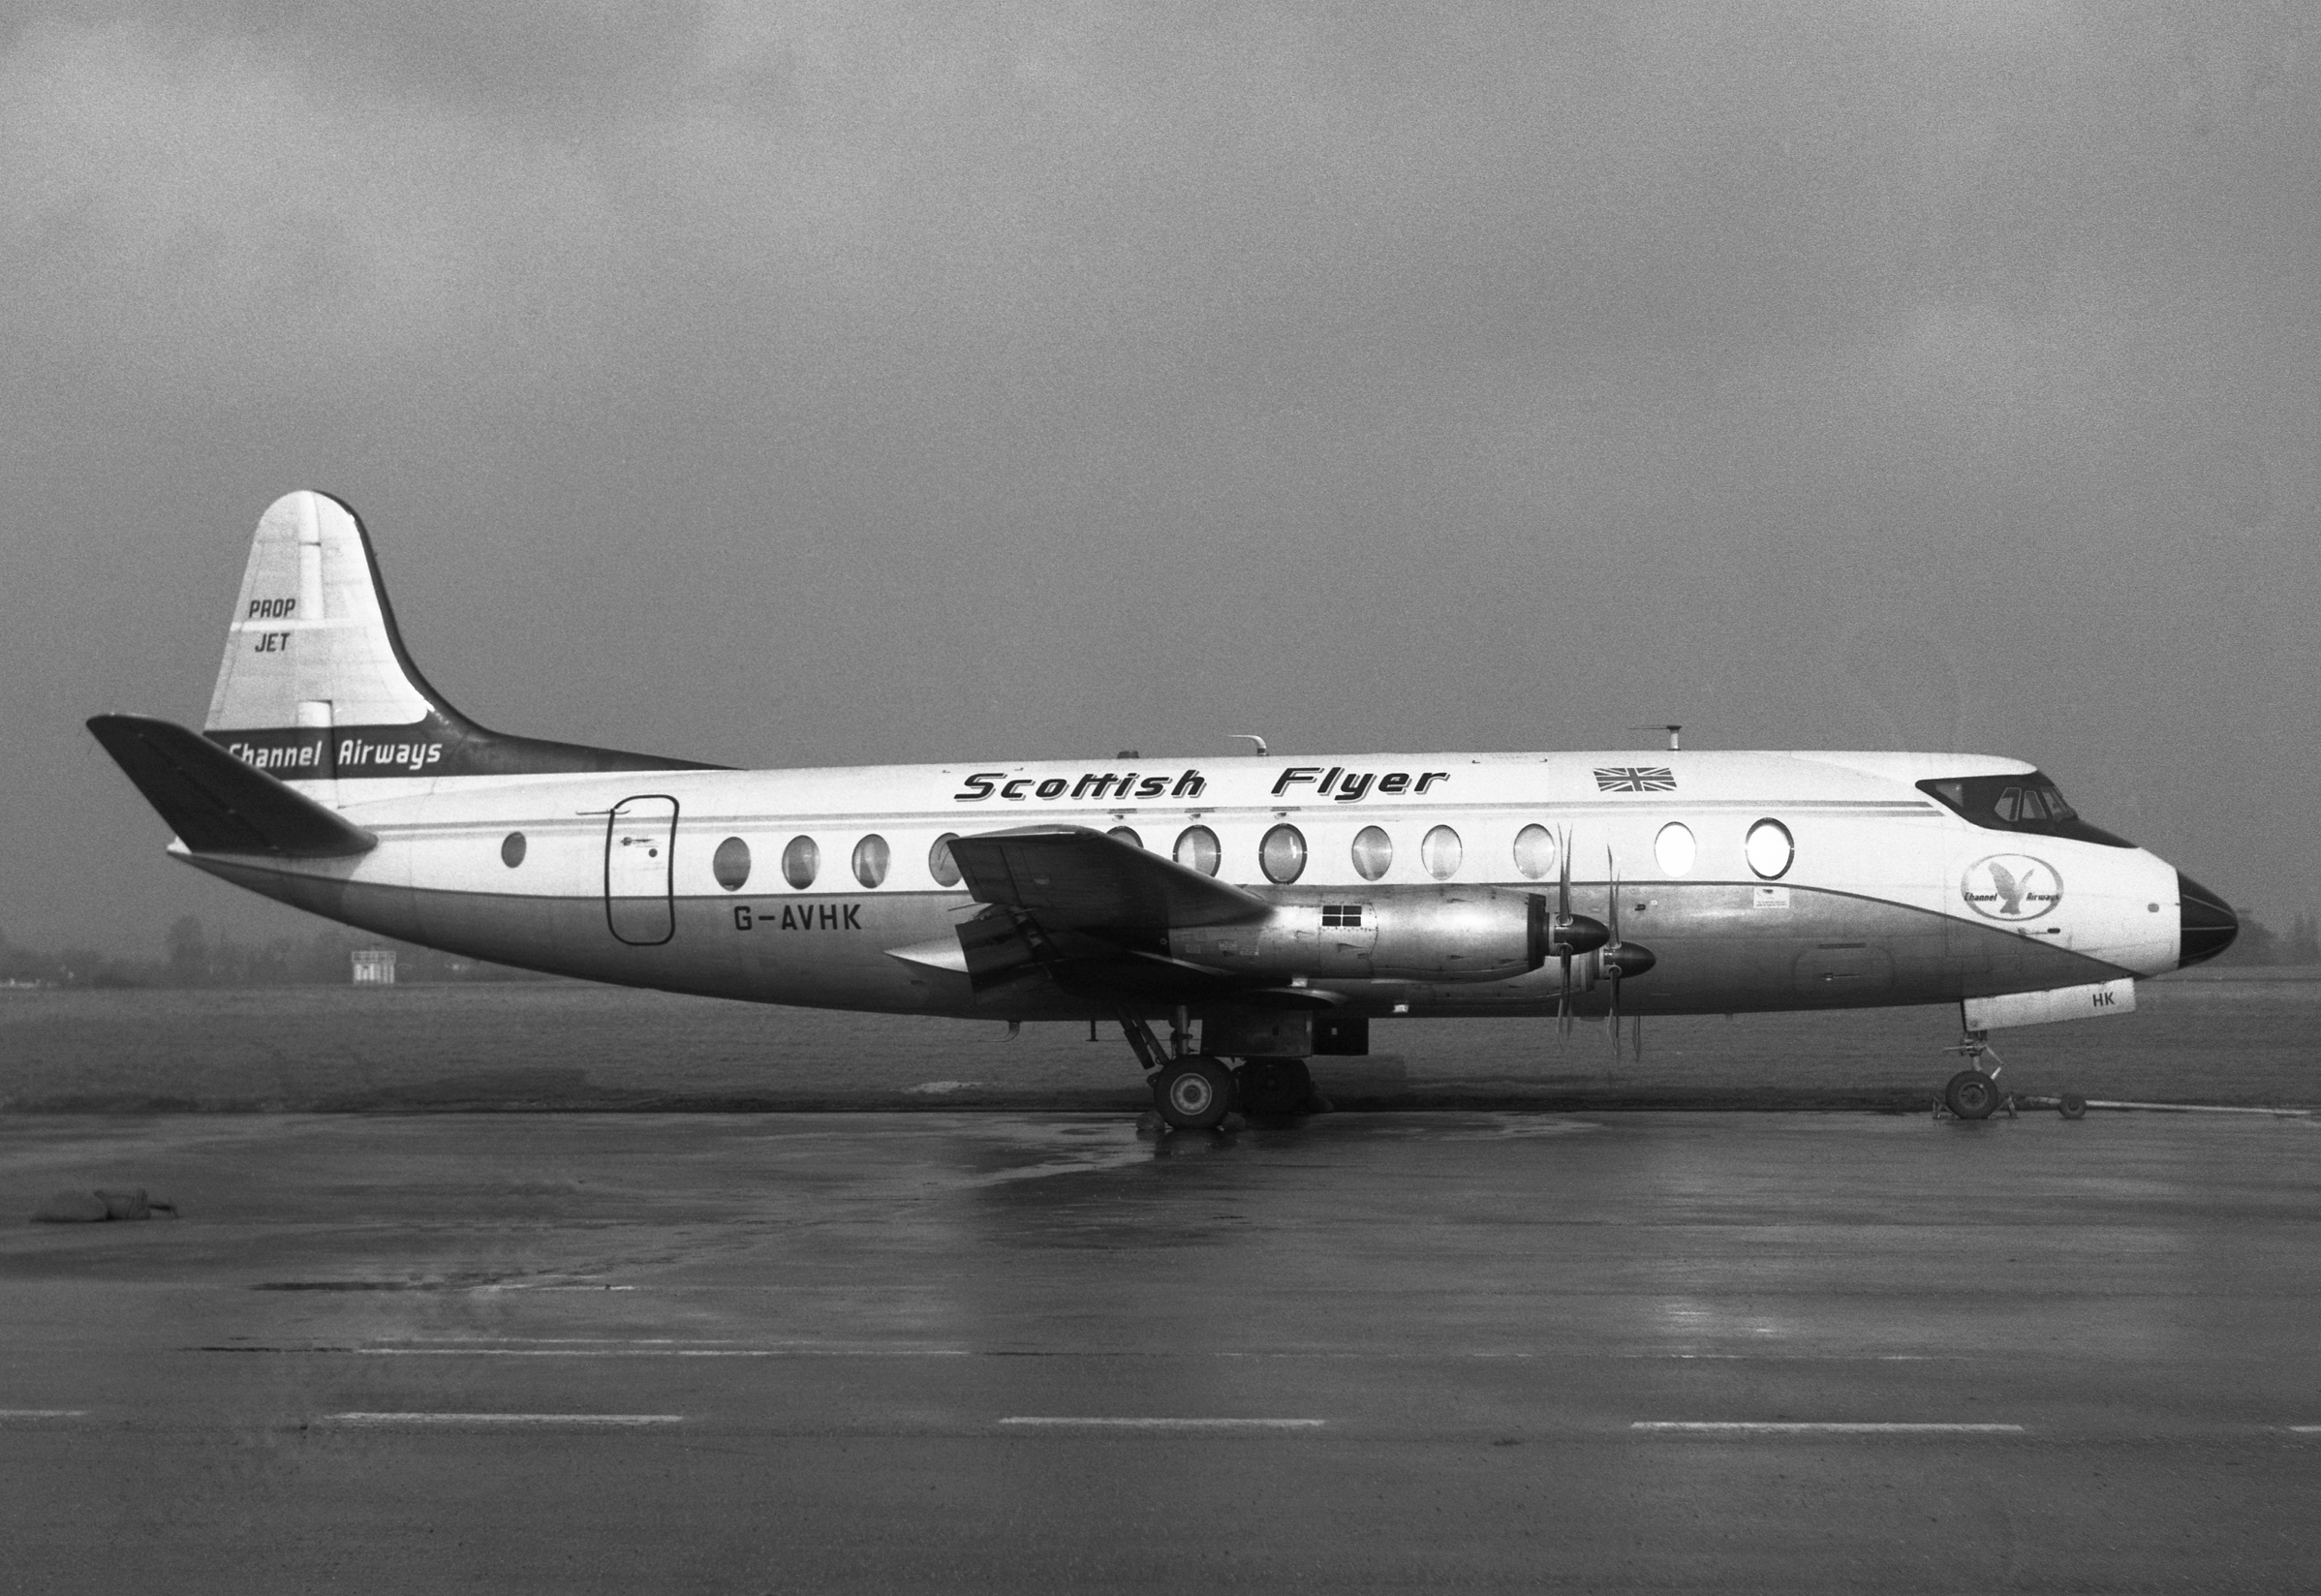 File Vickers Viscount 812 G Avhk Channel Aw Scottish